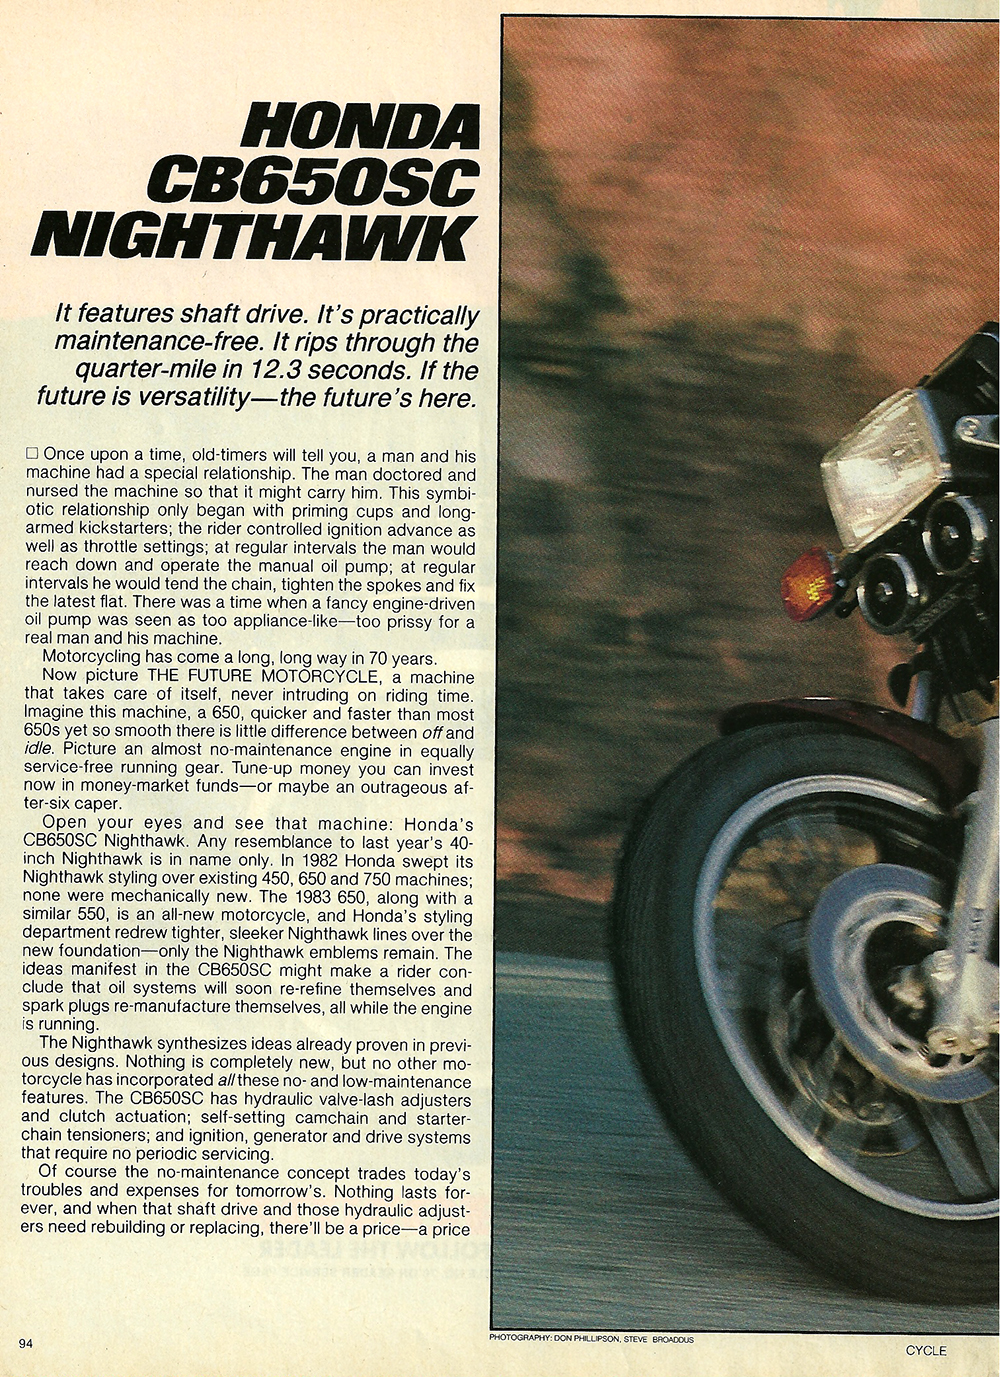 1983 Honda CB650SC Nighthawk road test 1.jpg